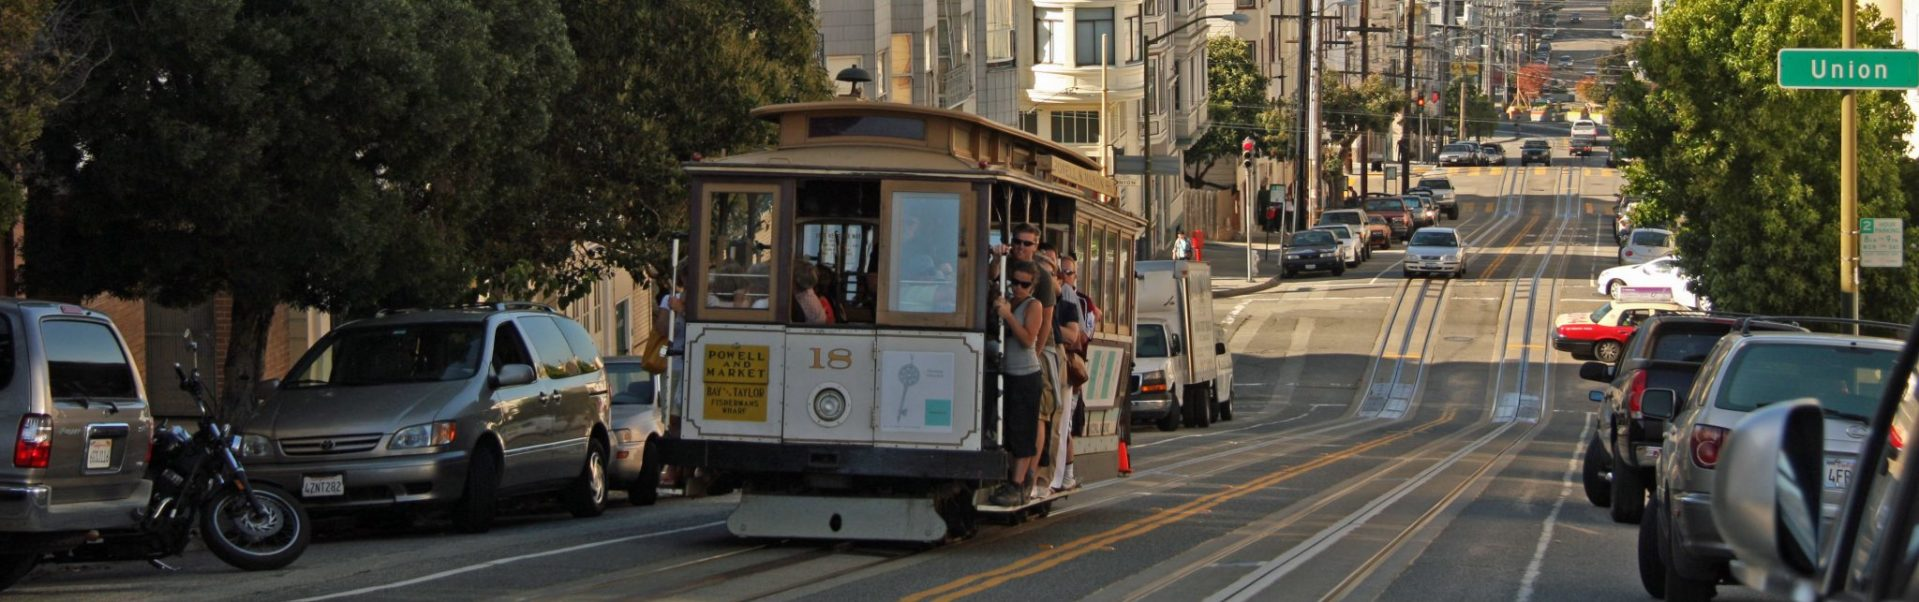 5 Highlights van San Francisco